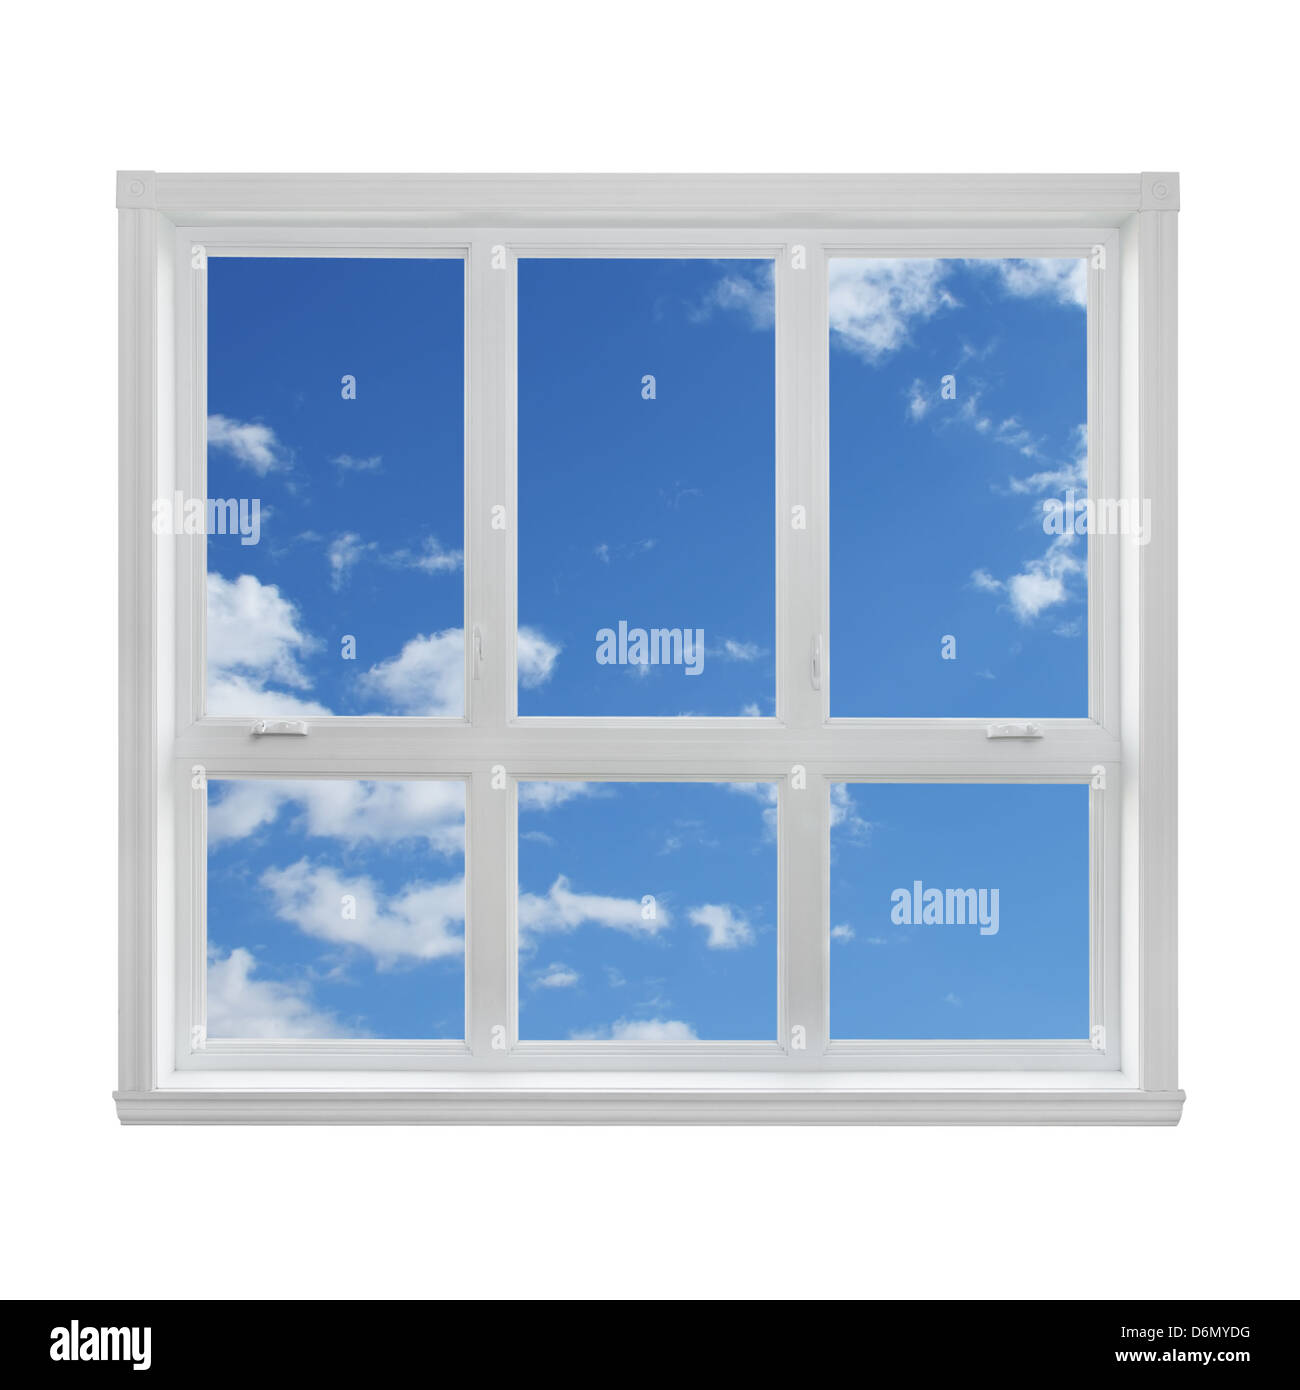 Blue sky with clouds seen through the window. - Stock Image